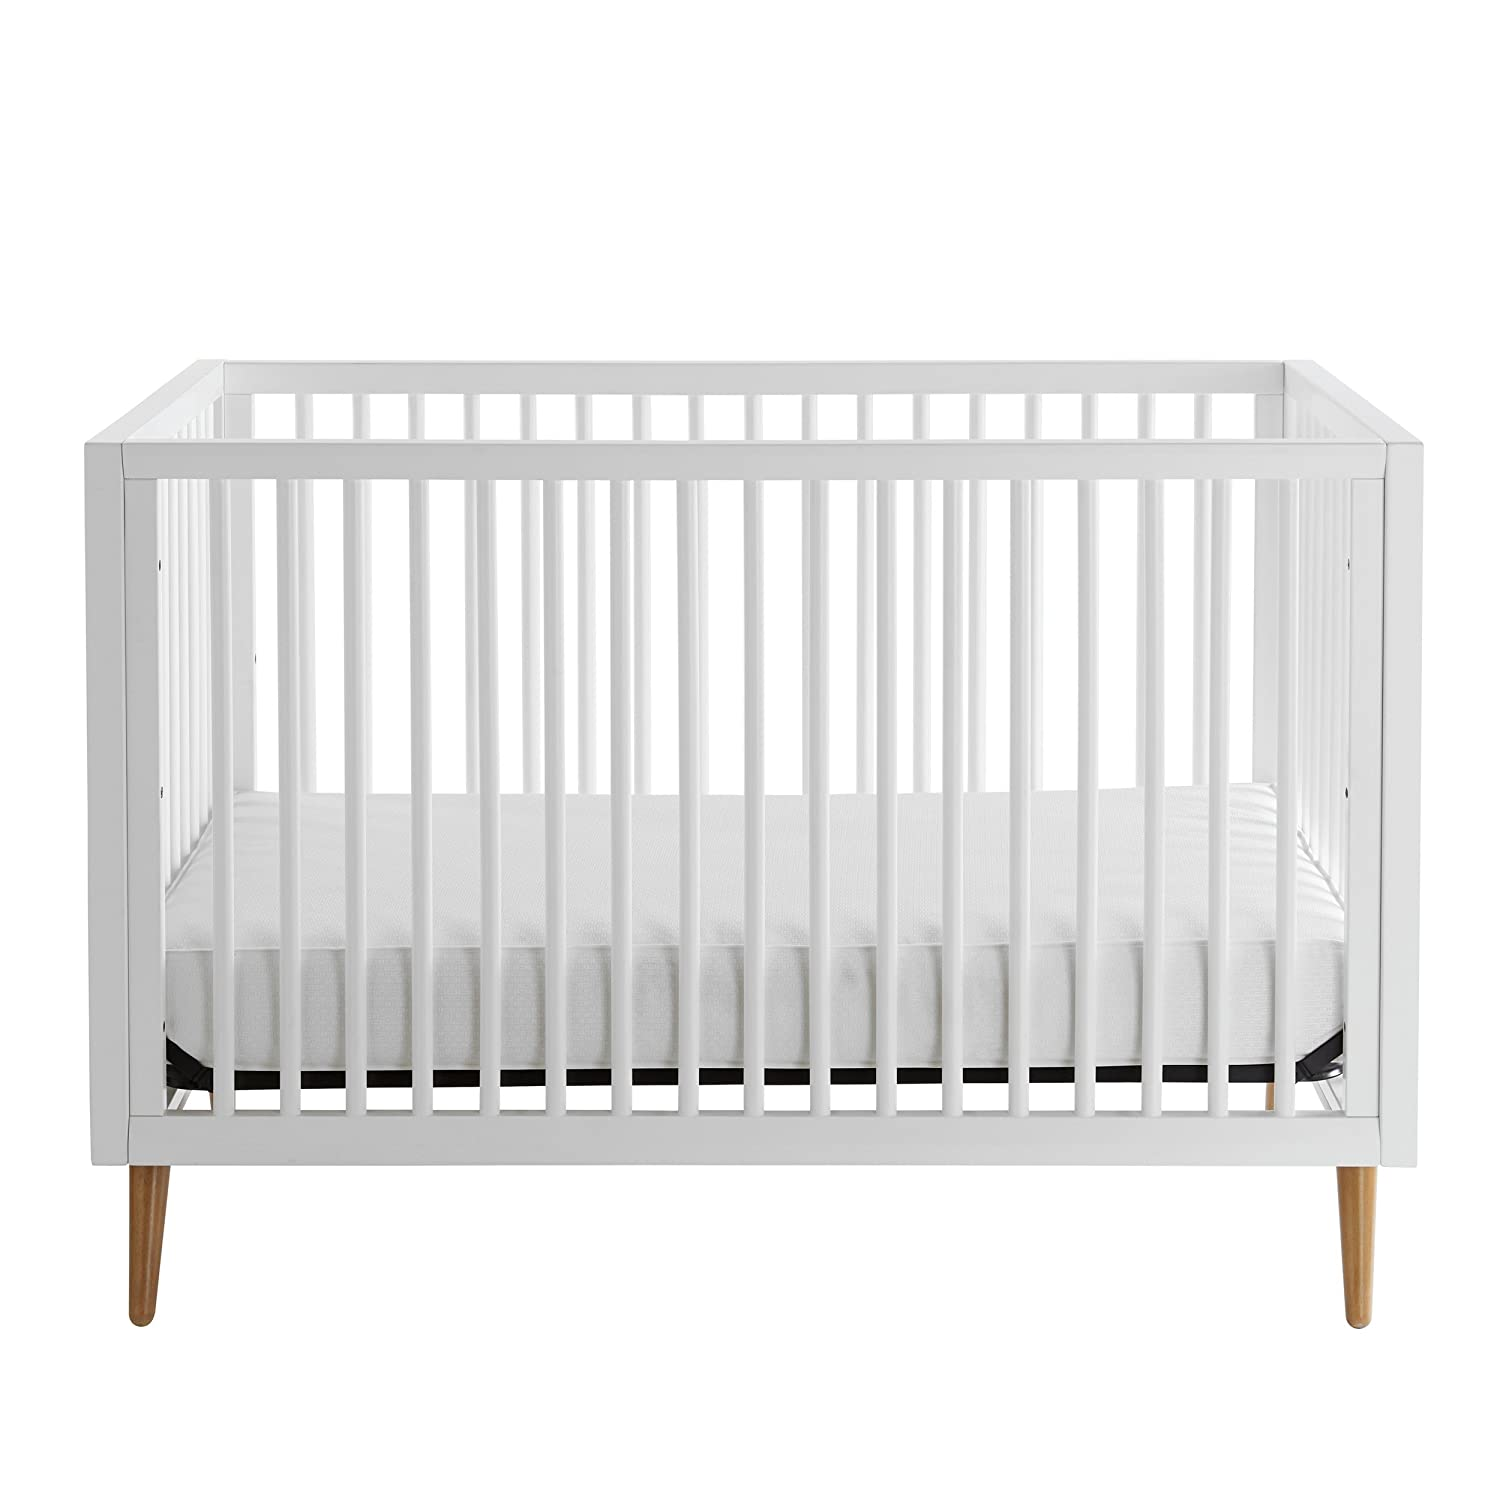 Kolcraft 3-in-1 Roscoe Convertible Crib – Easy-to-Assemble, Built-In Hardware, Mid Century Modern Design, 3 Mattress Height Positions, White